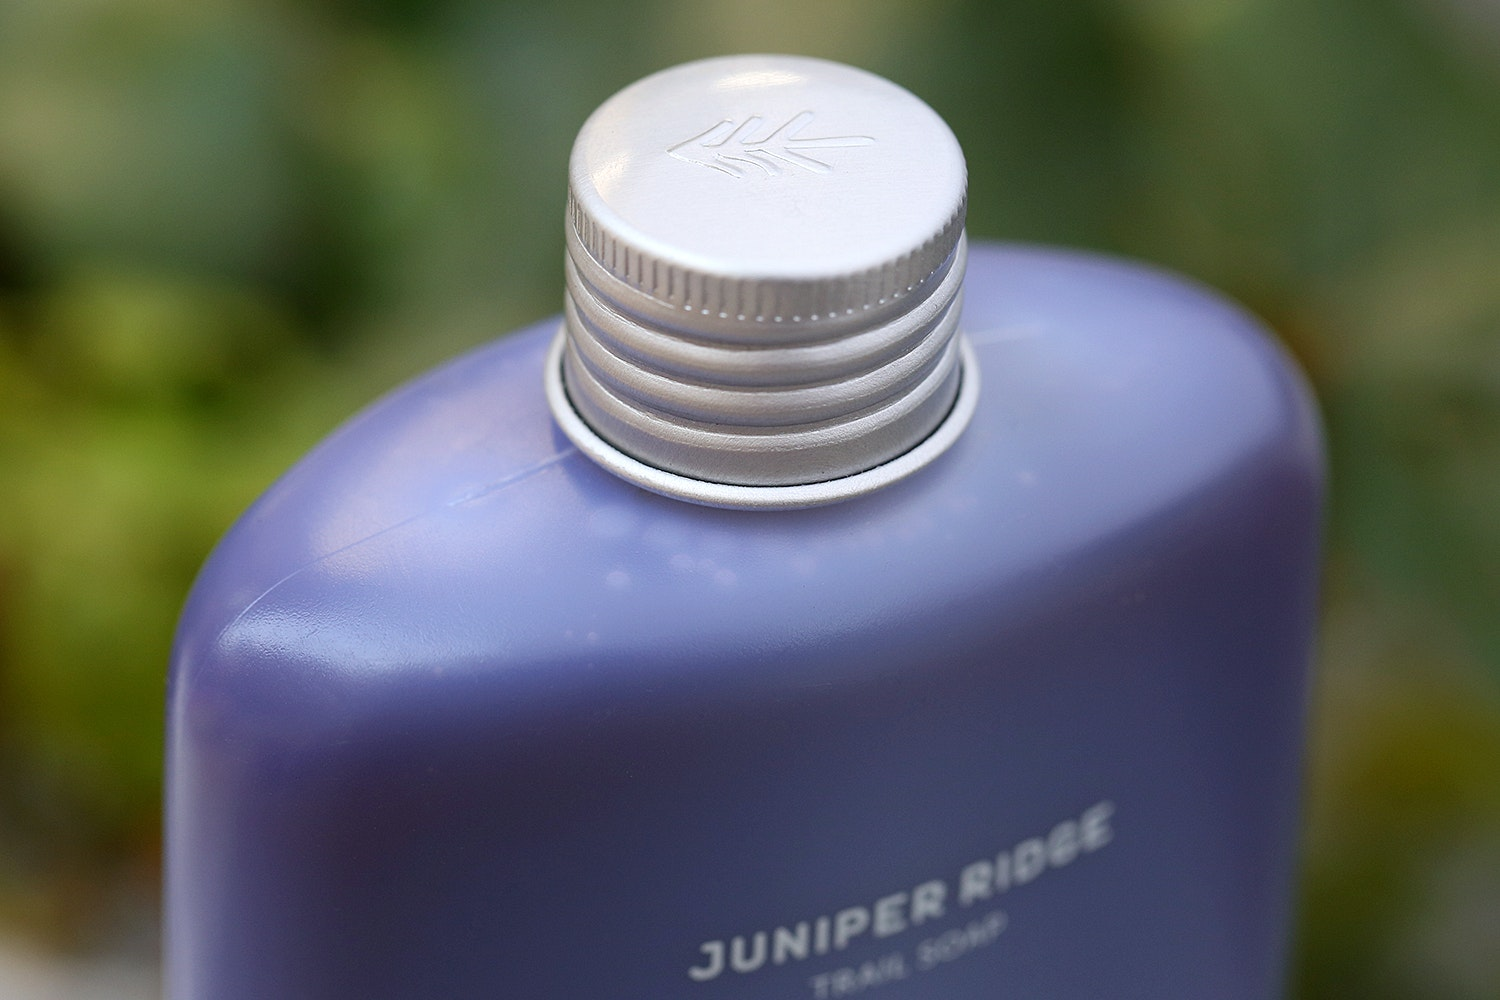 Juniper Ridge Trail Soap